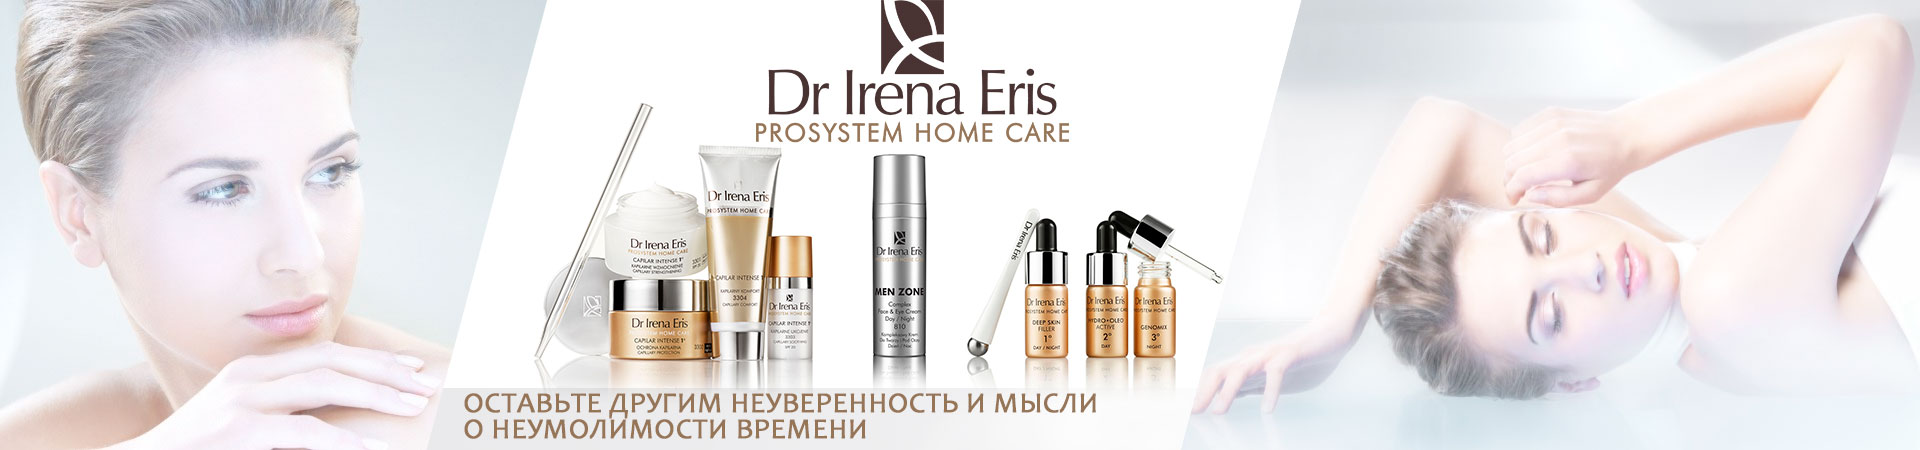 Dr Irena Eris Prosystem Home Care